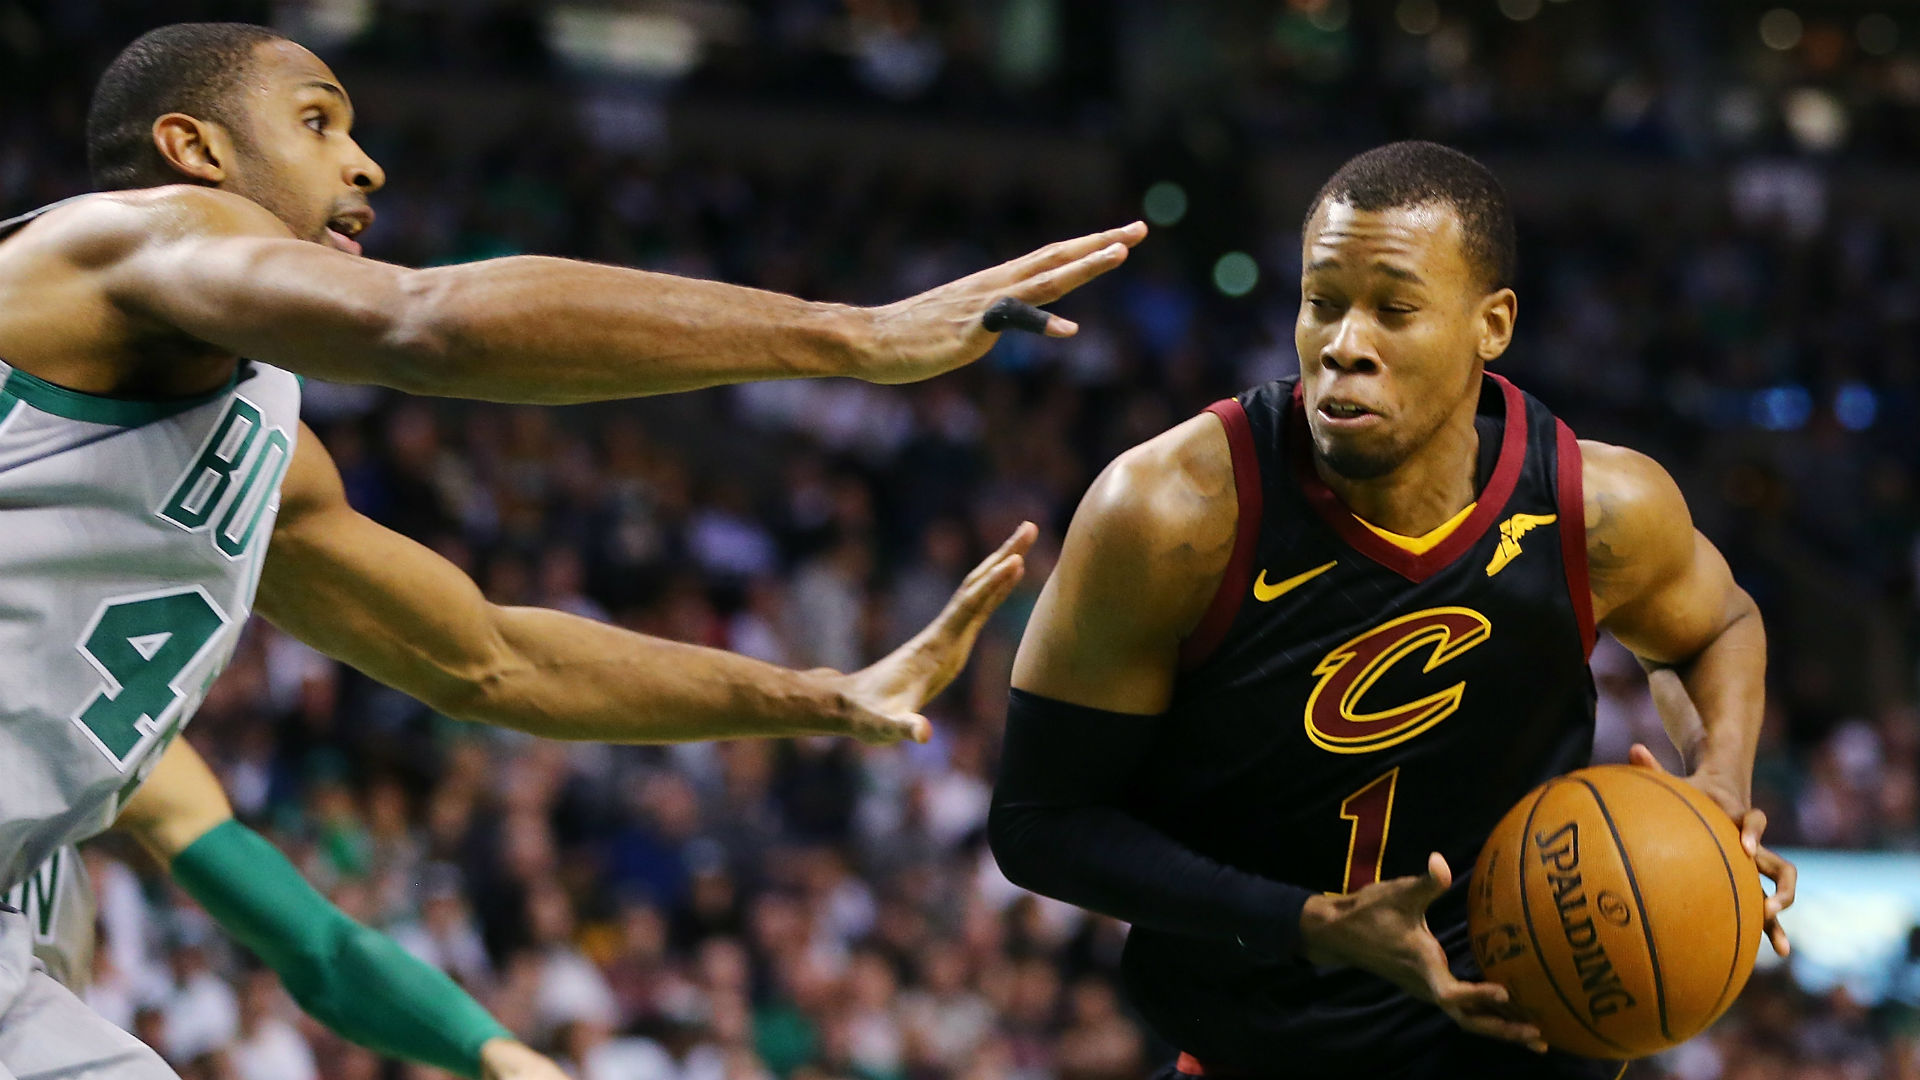 Look Cavs spoil Pierce's jersey party